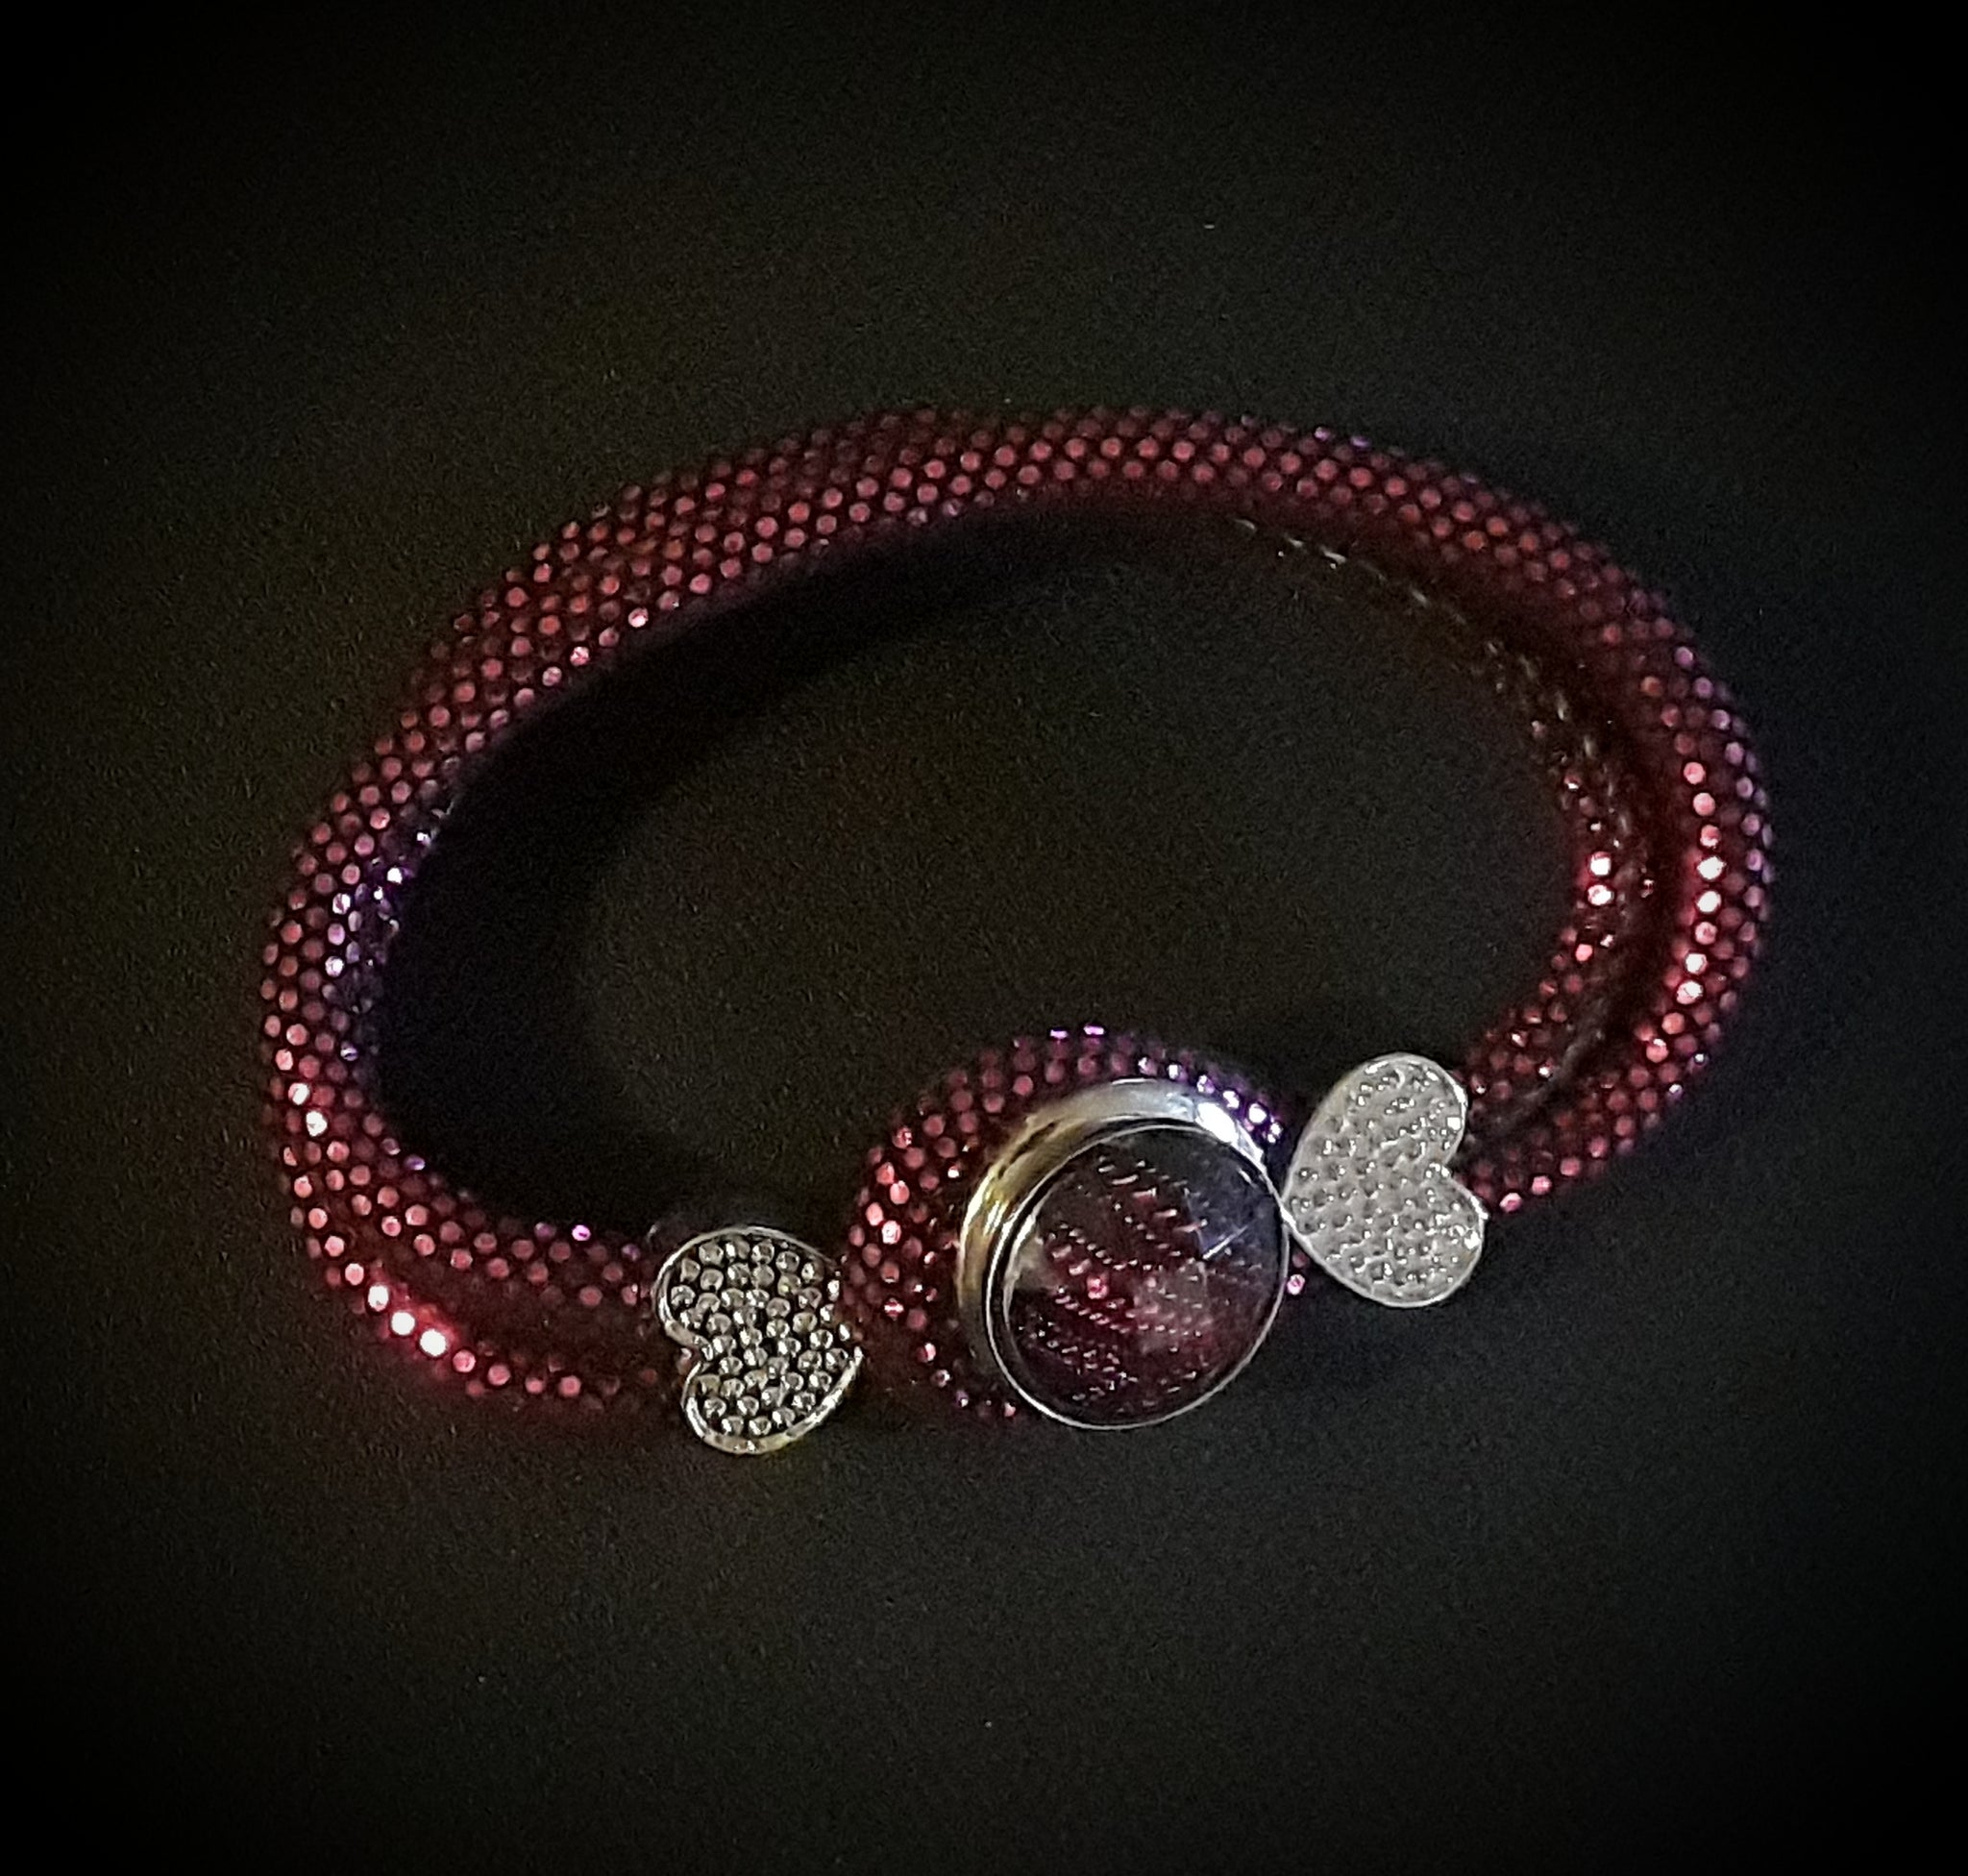 18mm noosa snap bracelet with 2 snaps